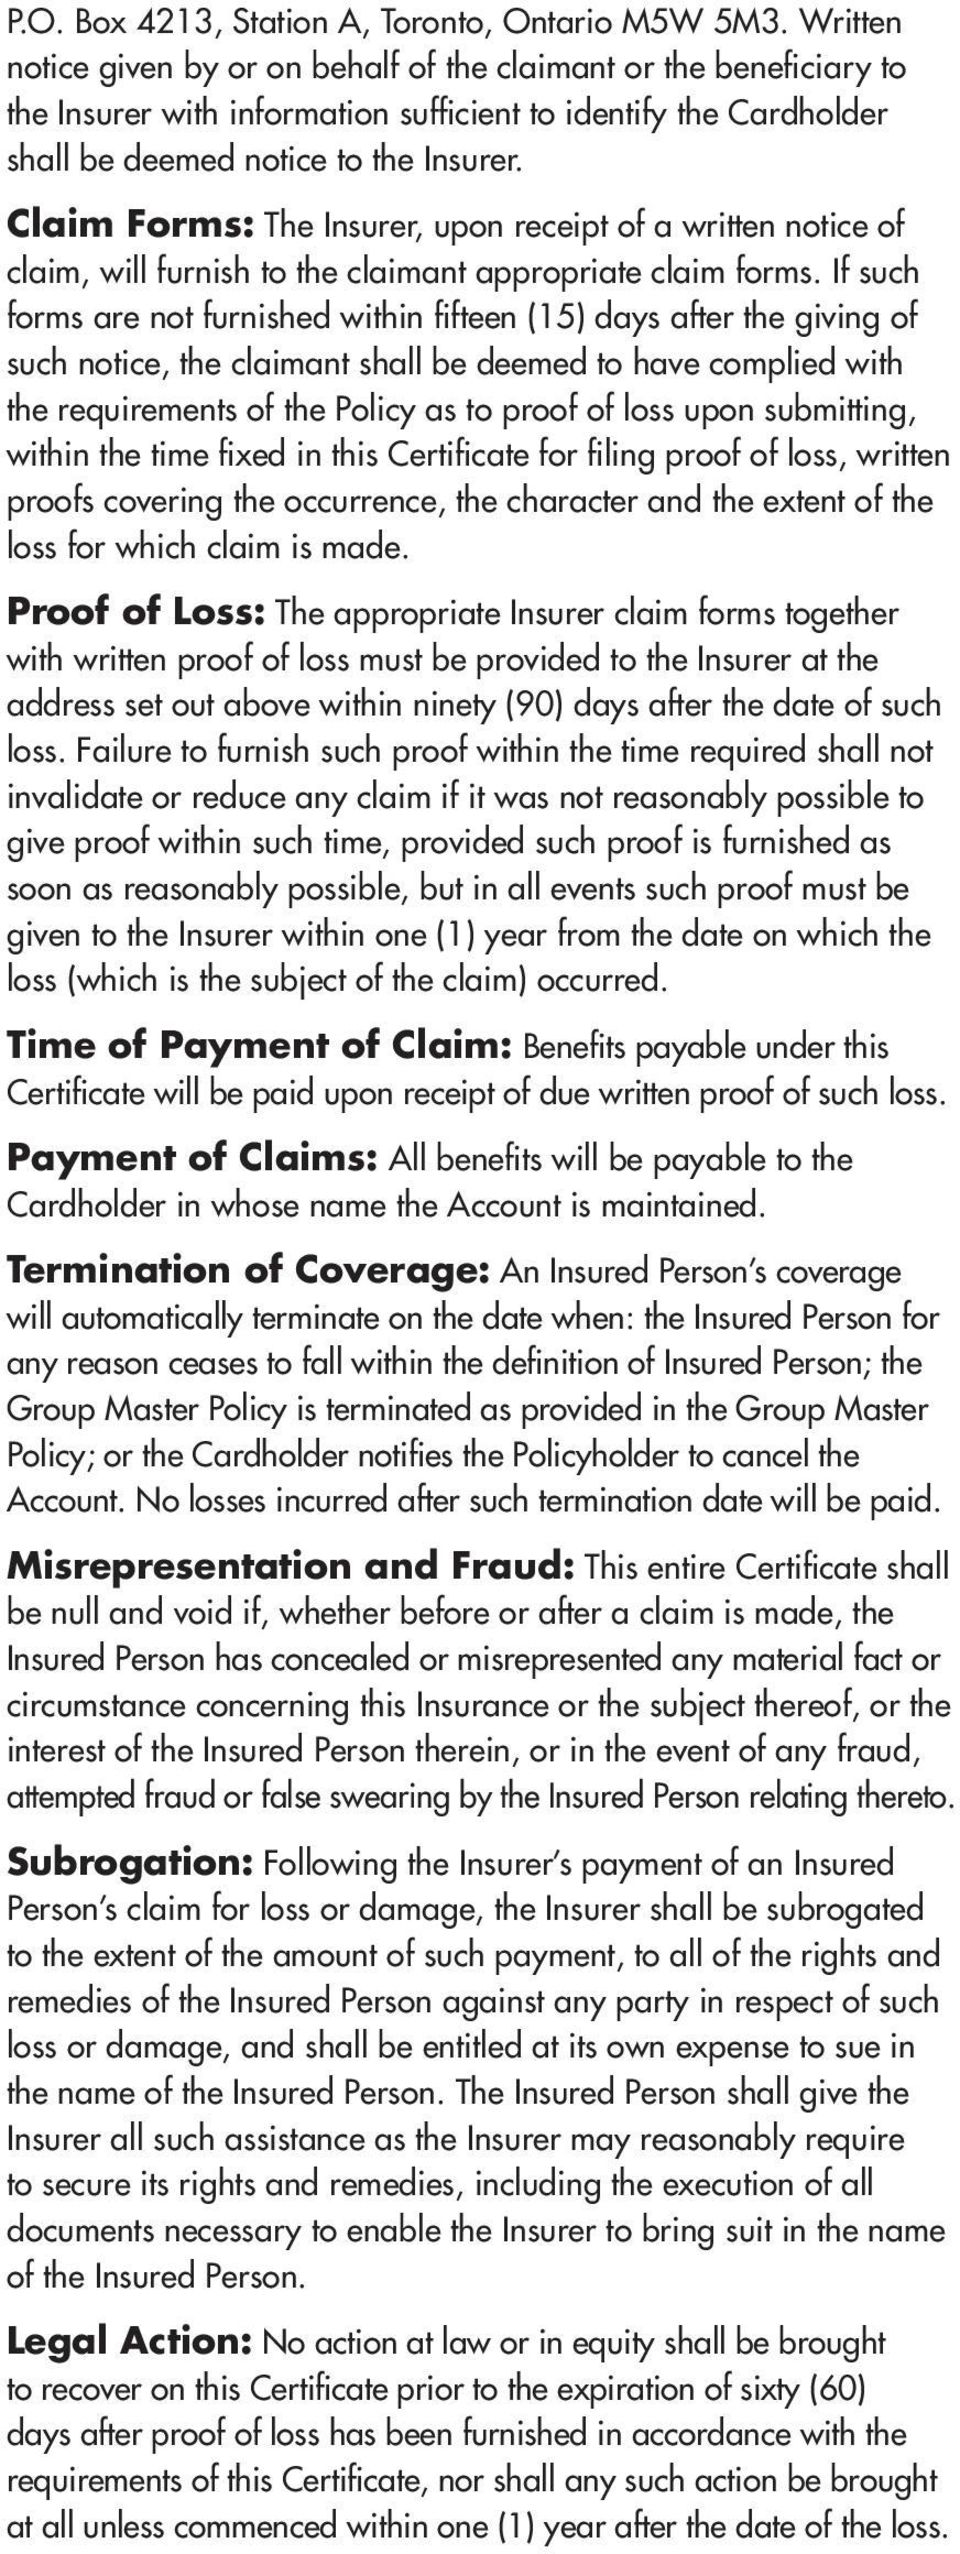 Claim Forms: The Insurer, upon receipt of a written notice of claim, will furnish to the claimant appropriate claim forms.